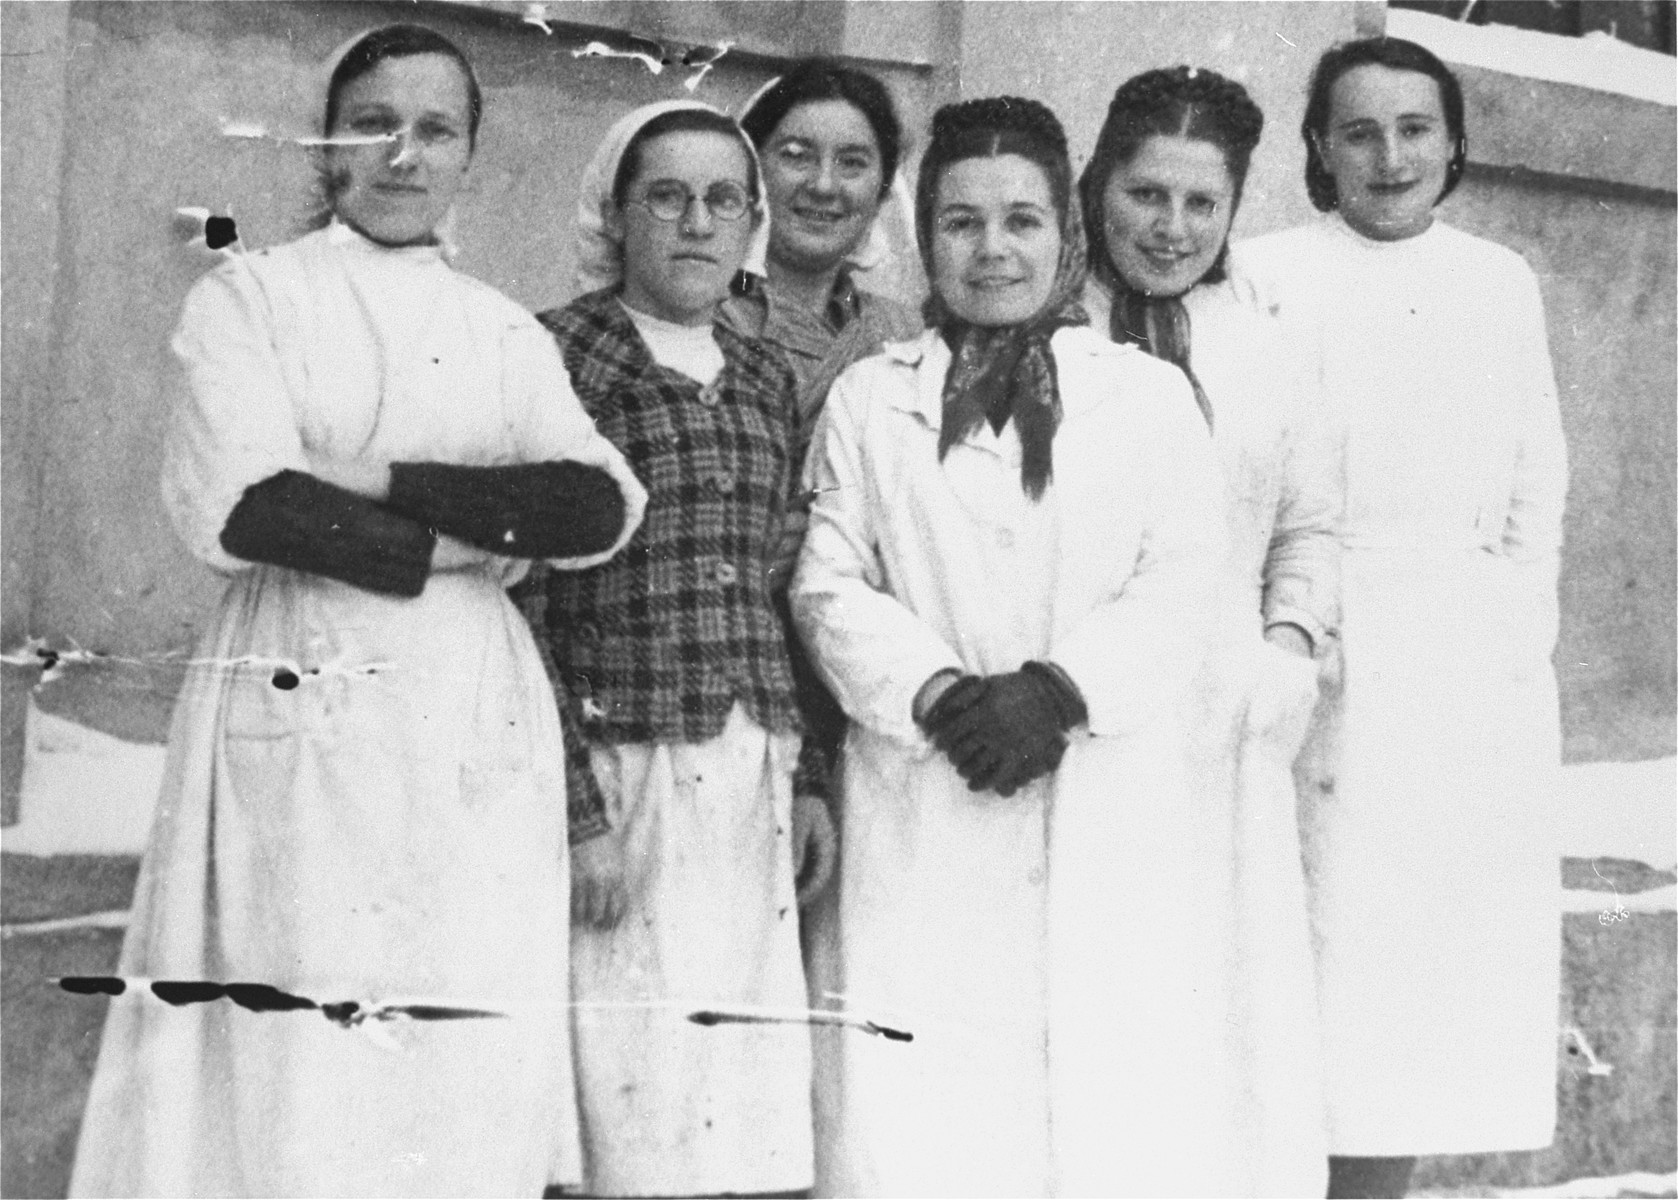 Group portrait of the staff of the soup kitchen in the Kielce ghetto.  This photo was one the images included in an official album prepared by the Judenrat (Jewish Council) of the Kielce ghetto in 1942.